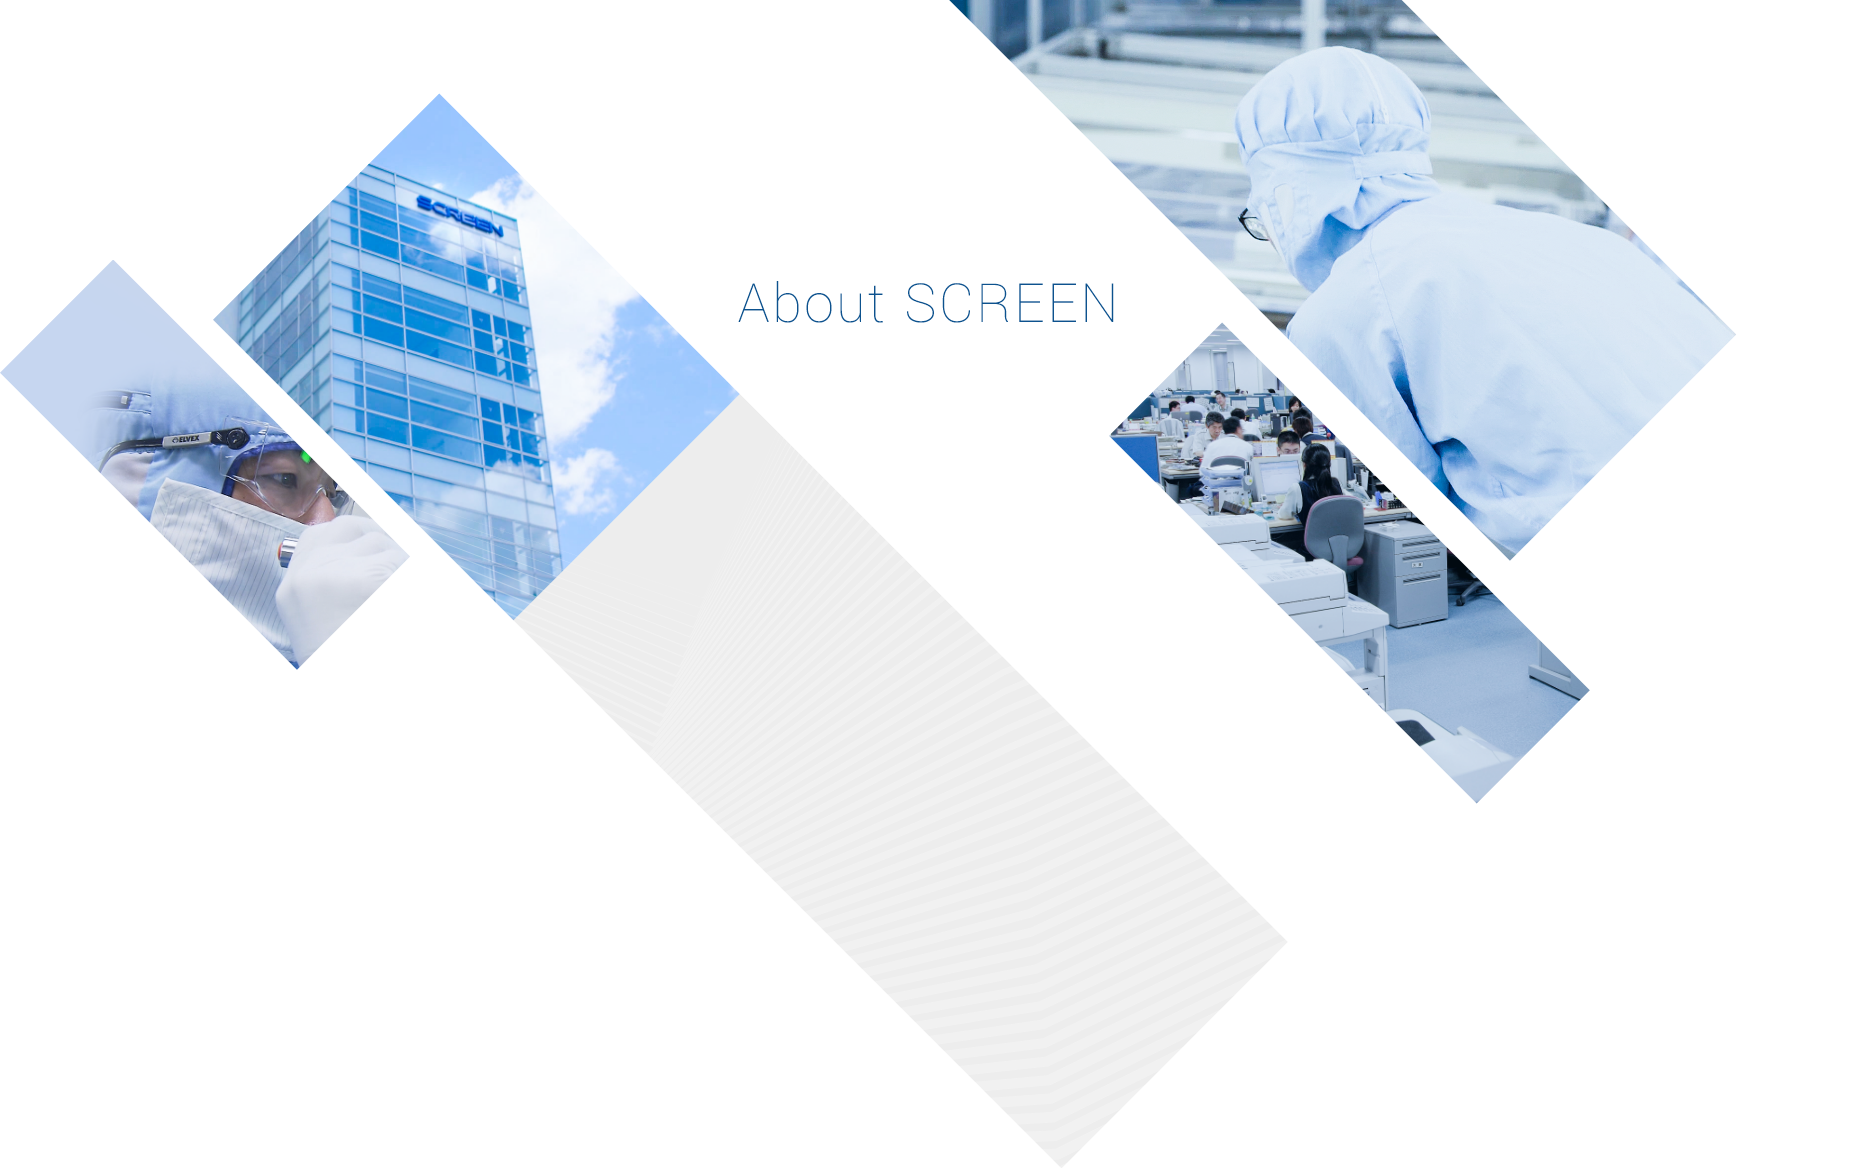 ABOUT SCREEN